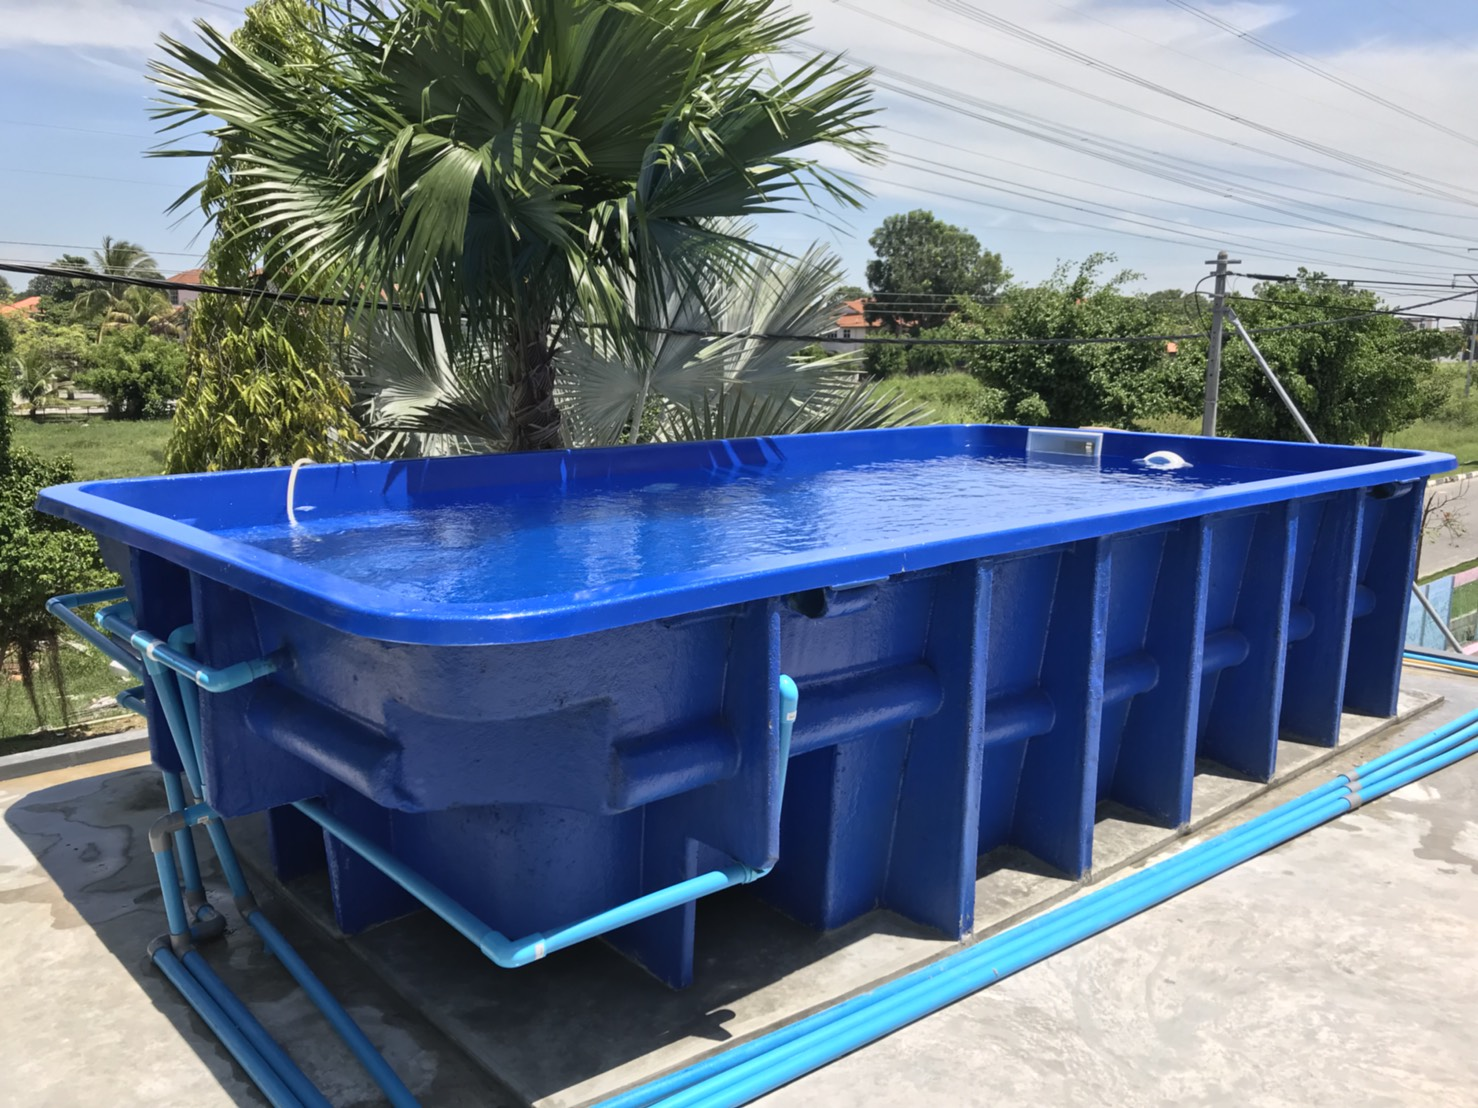 Pool World KoratAbove Ground Pools - Pool World Korat